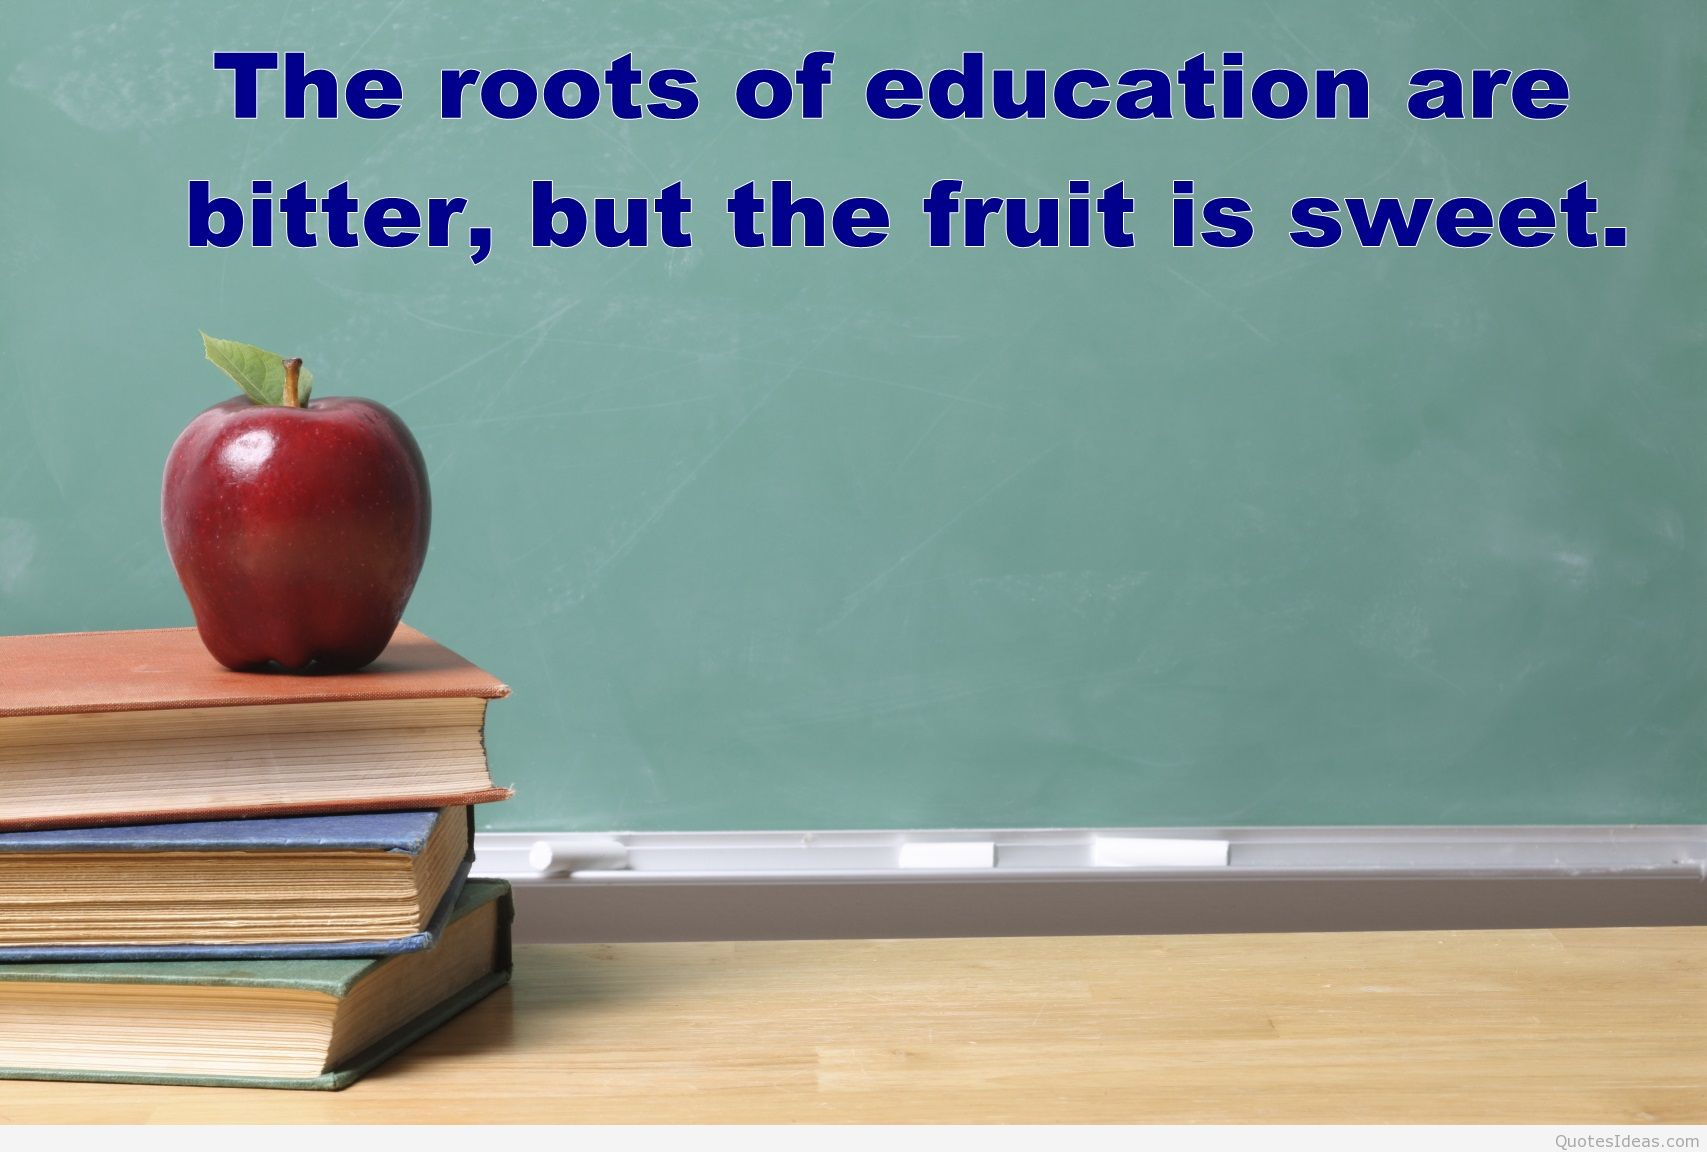 Amazing Quotes About Education. QuotesGram